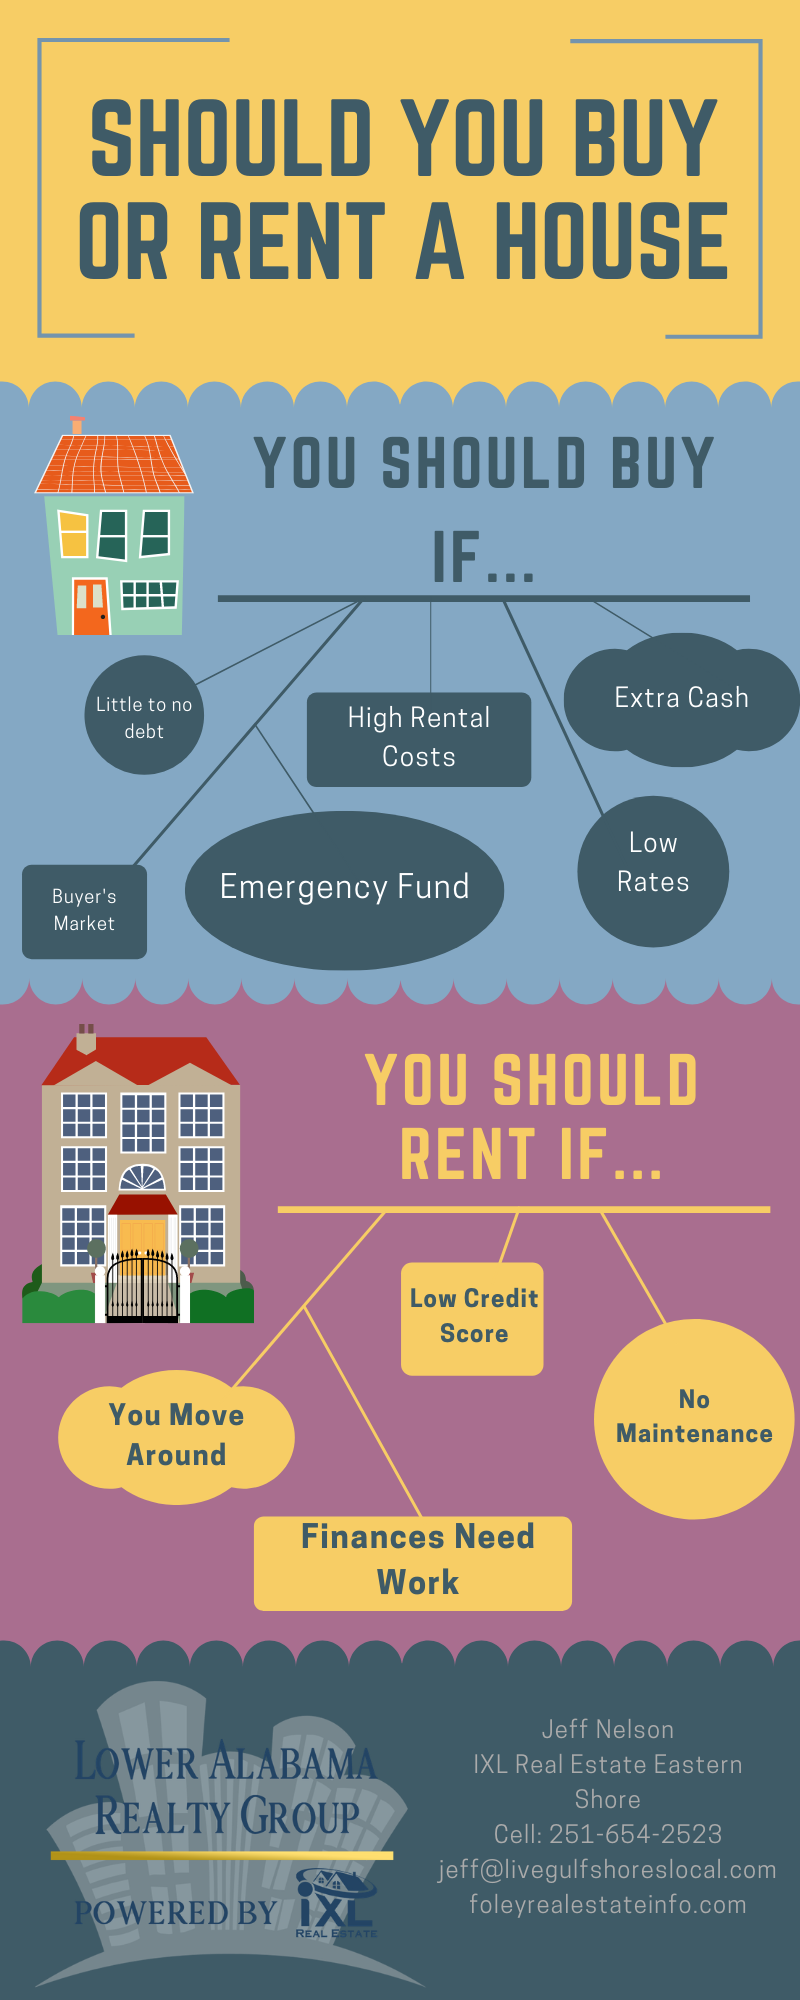 Home Buying Tip 1 Does It Make Sense To Rent Or Buy Renting A House Home Buying Tips Home Buying